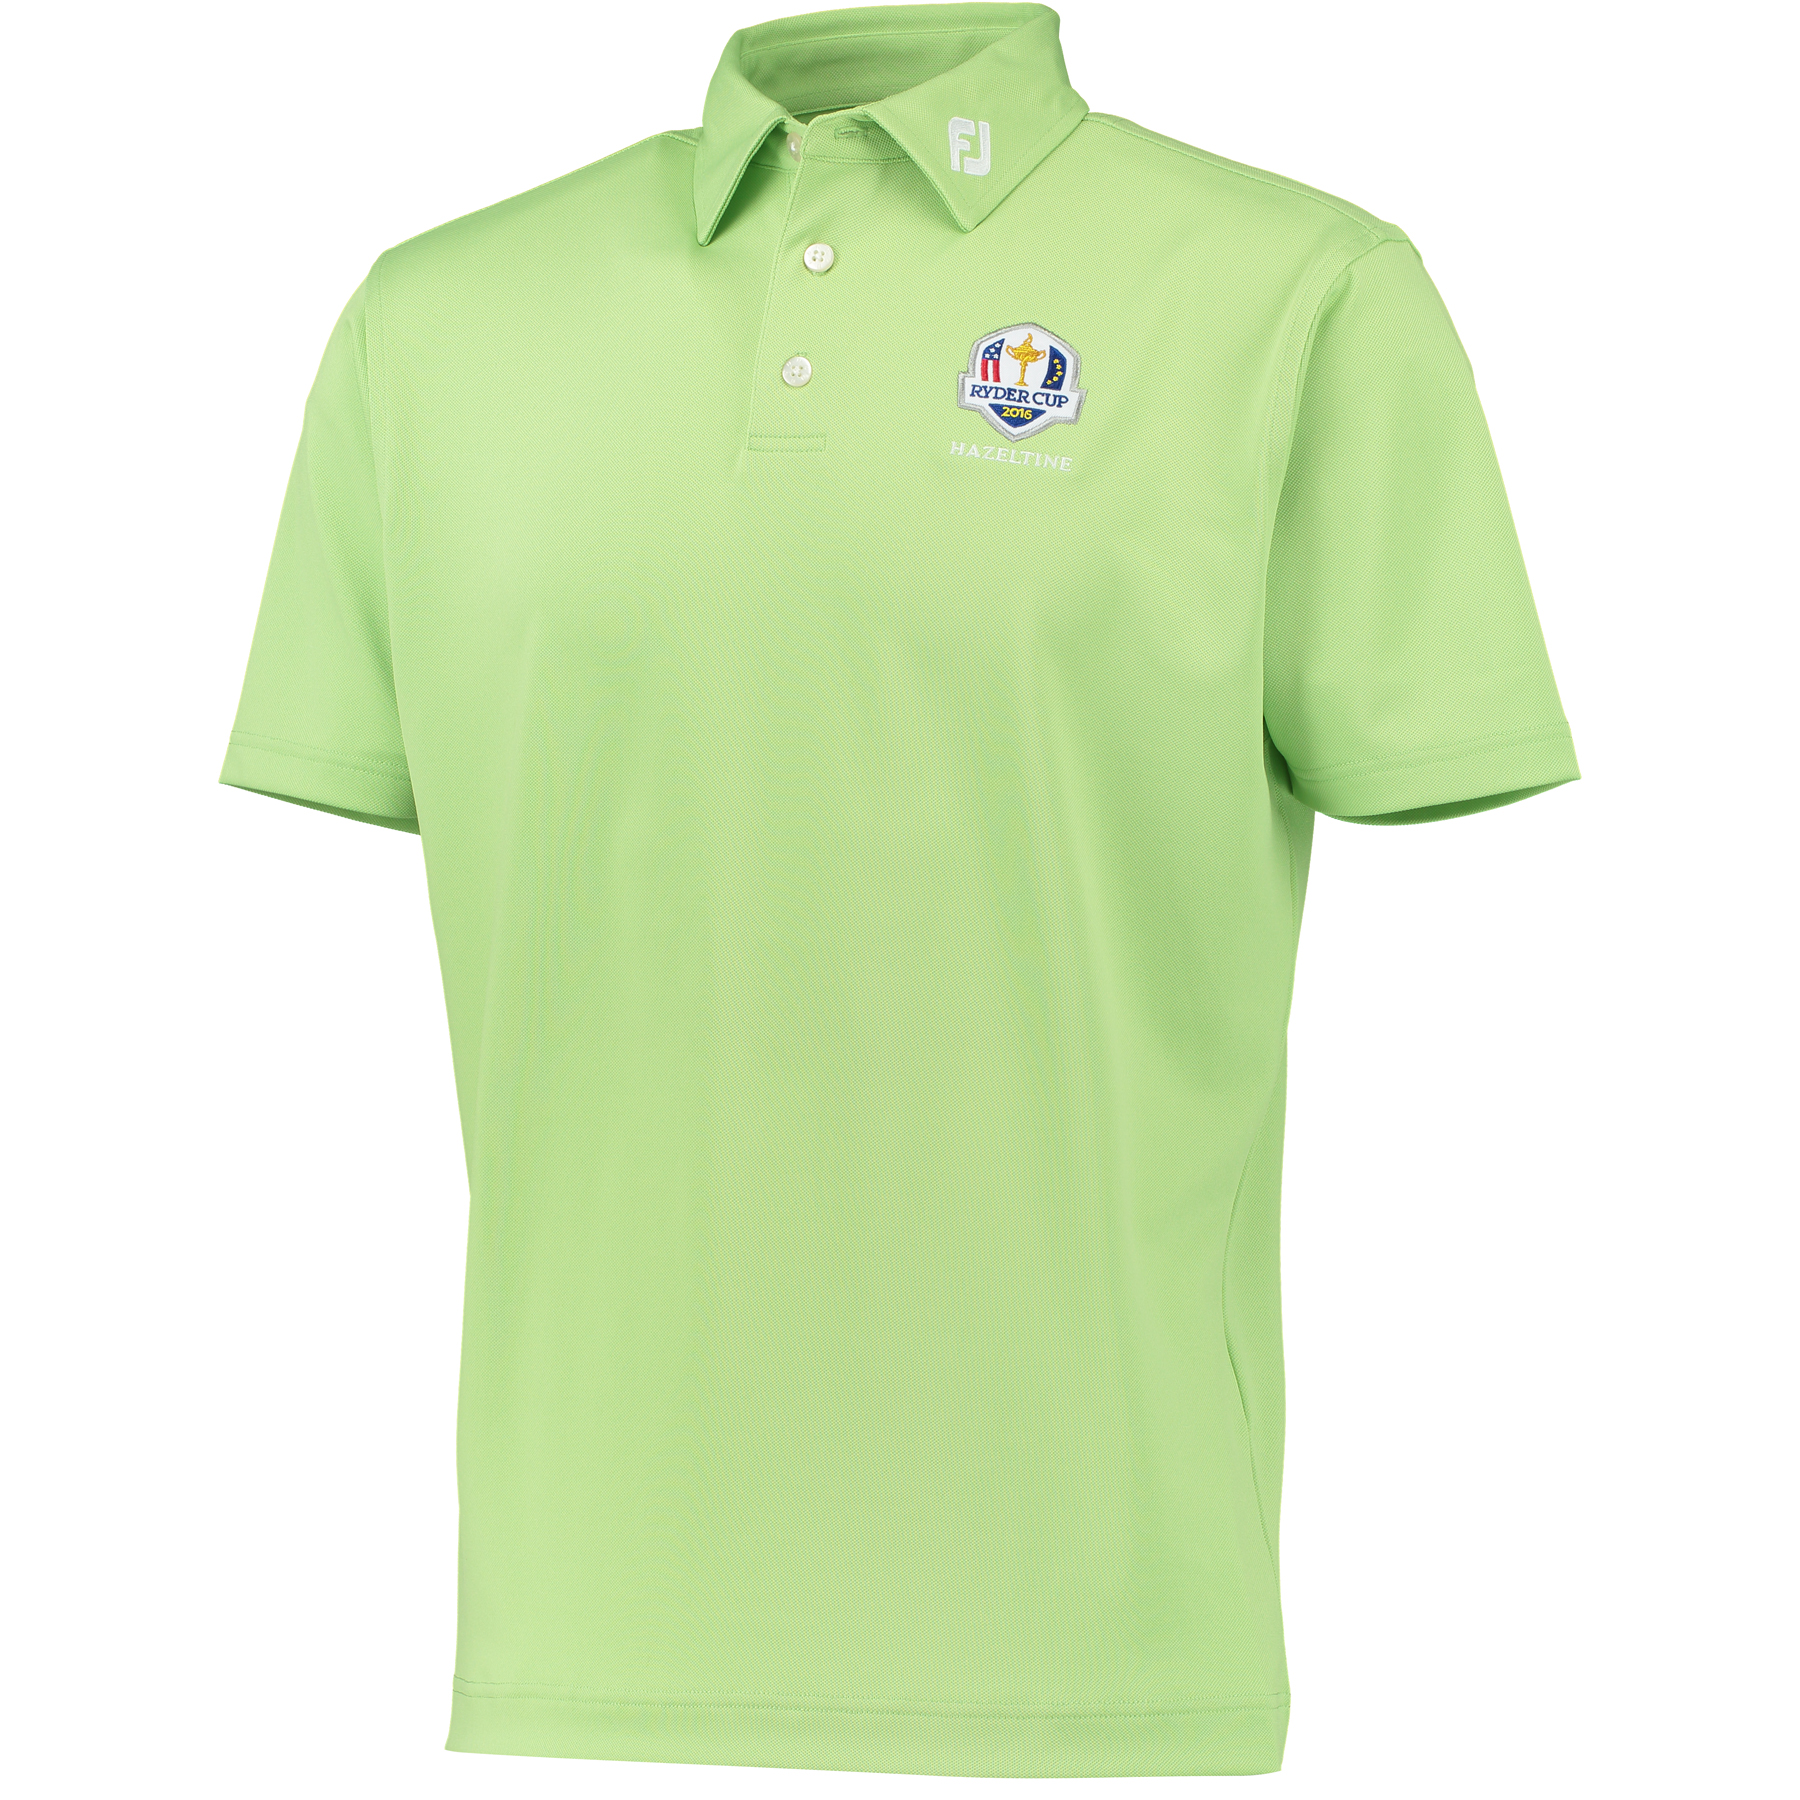 The 2016 Ryder Cup Footjoy Solid Stretch Pique Polo - Lime